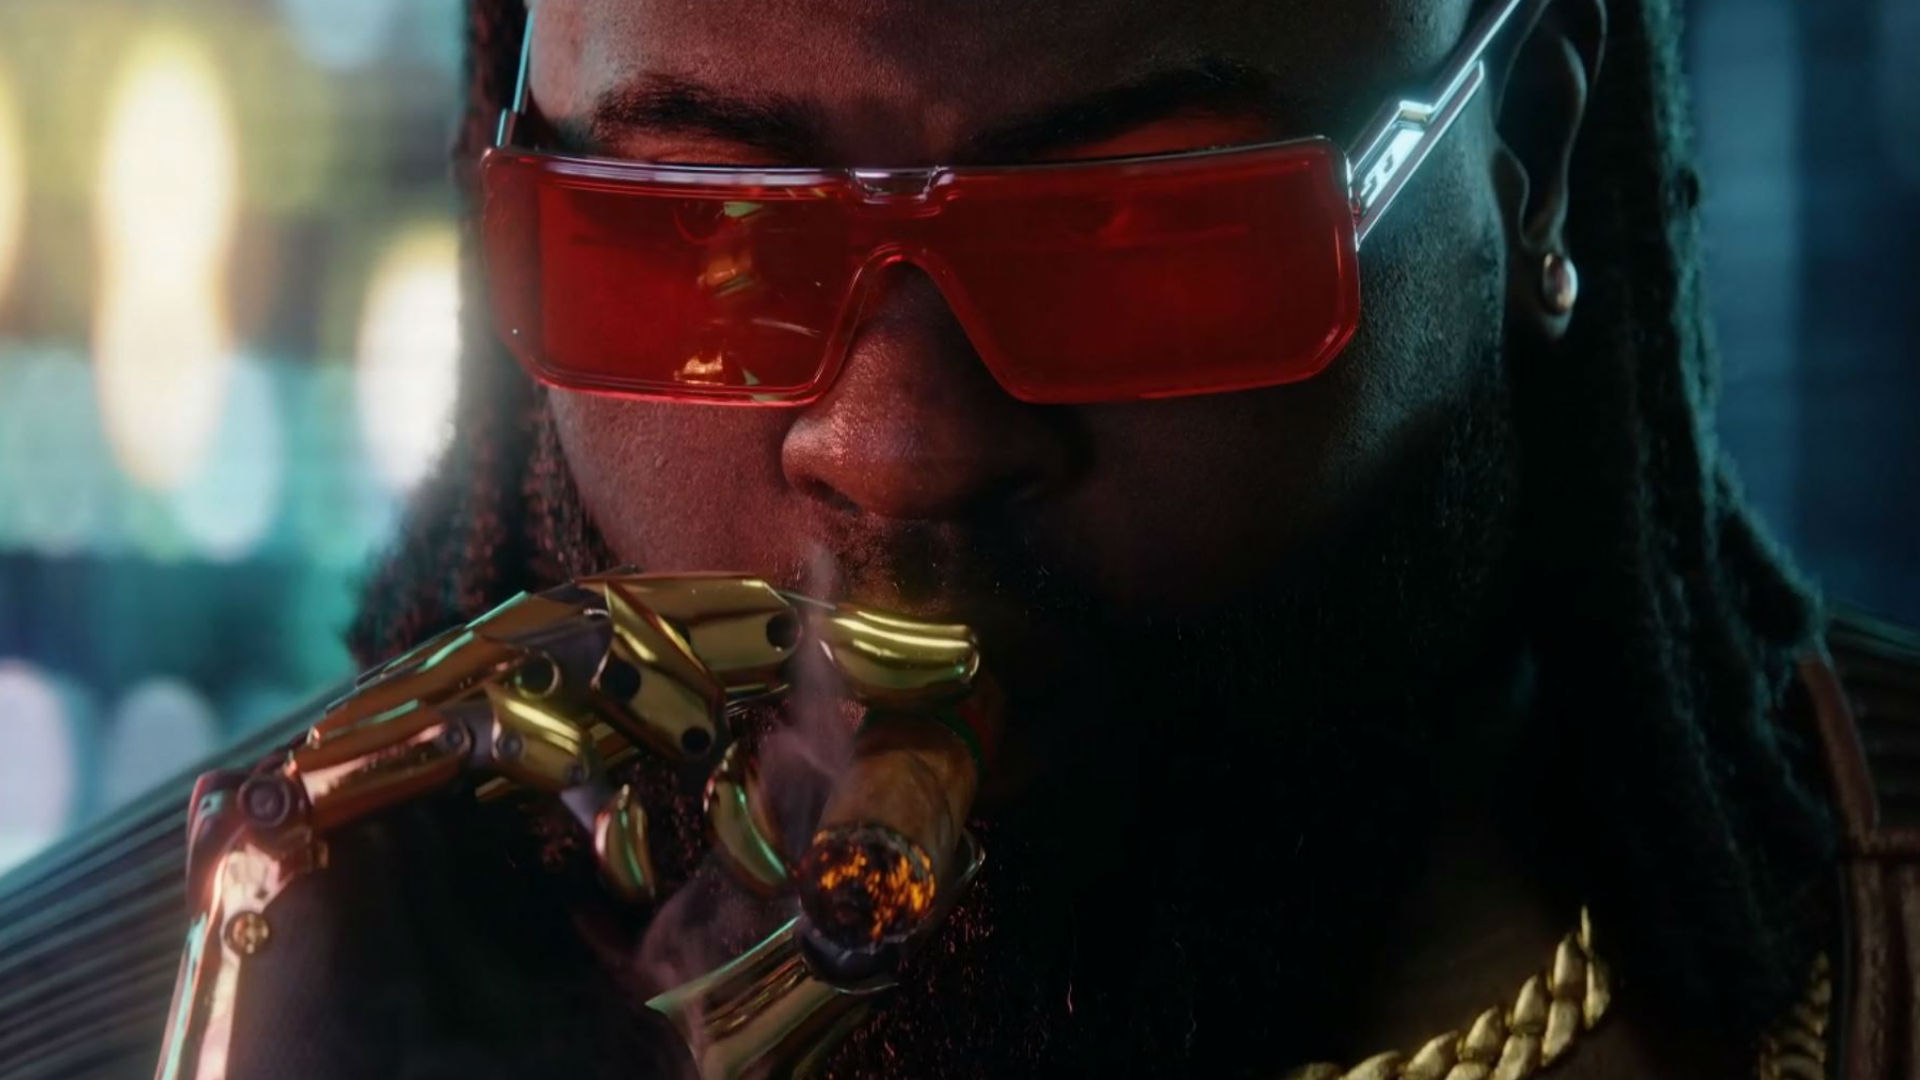 Cyberpunk 2077 will release on Steam, GoG, and the Epic